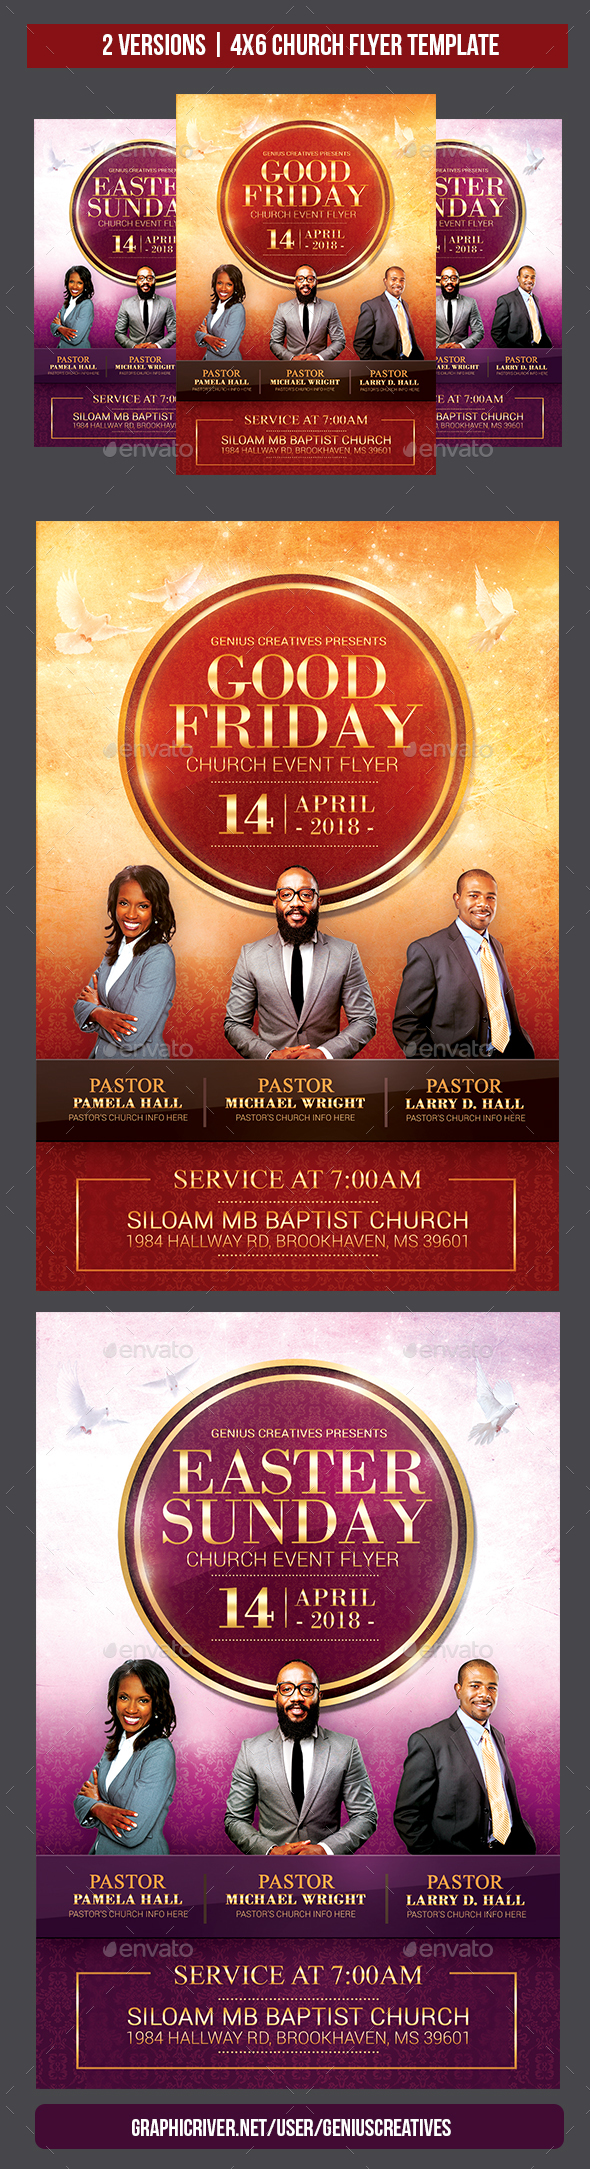 Church Flyer Template - Church Flyers